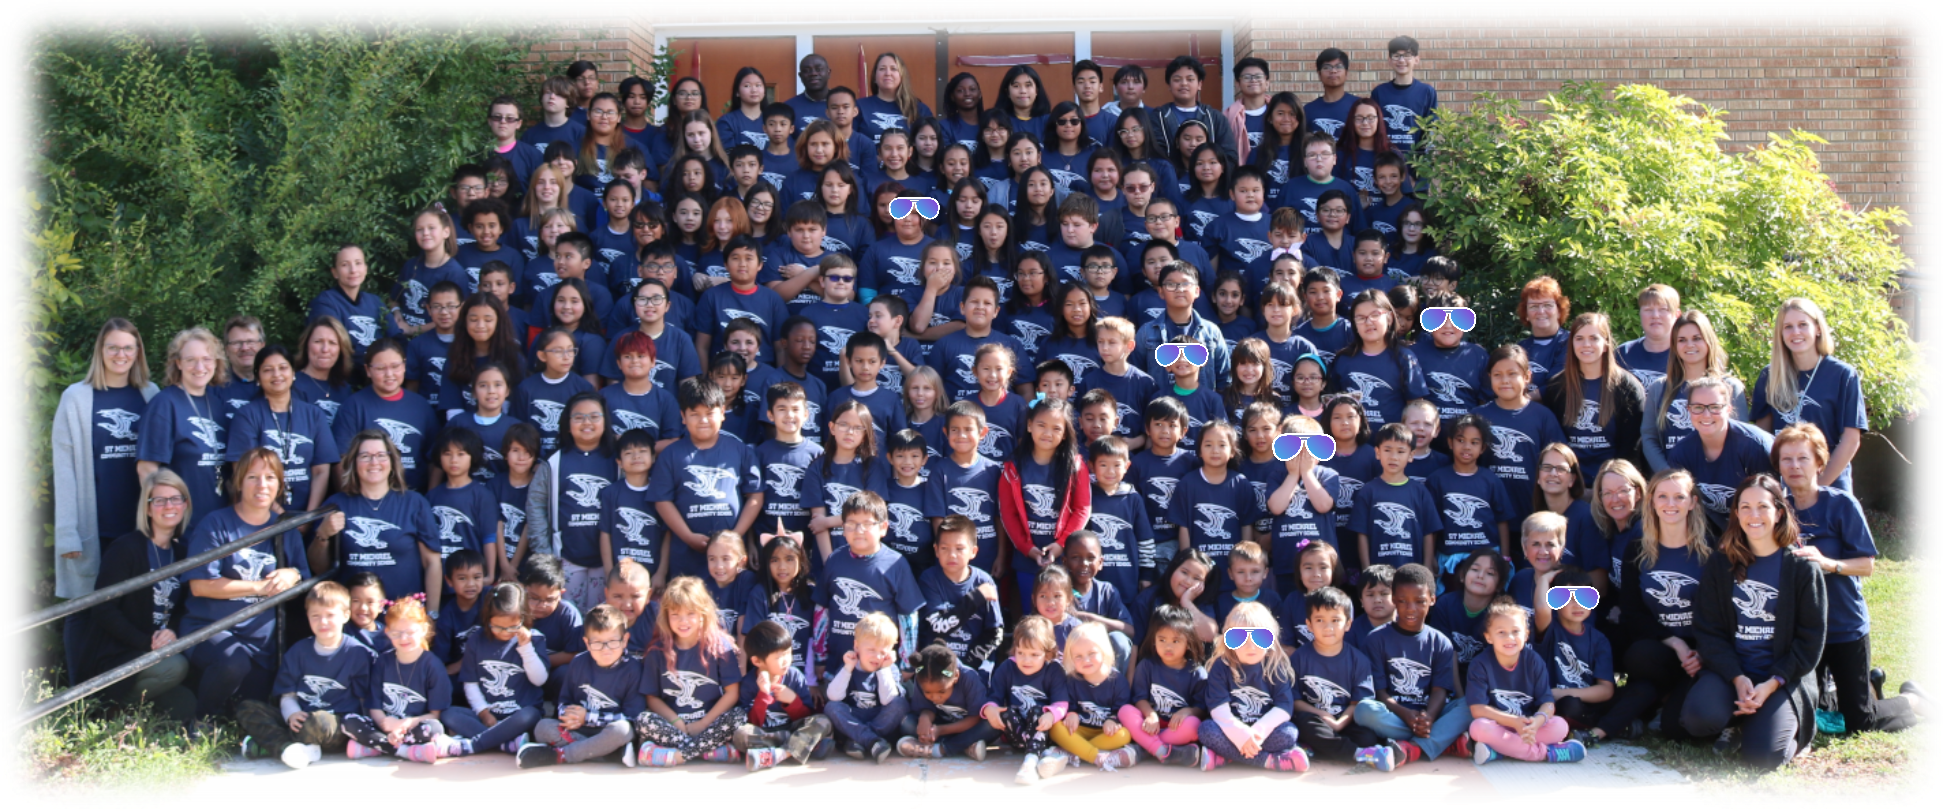 2019-2020 St. Michael Community School / we are all children of God